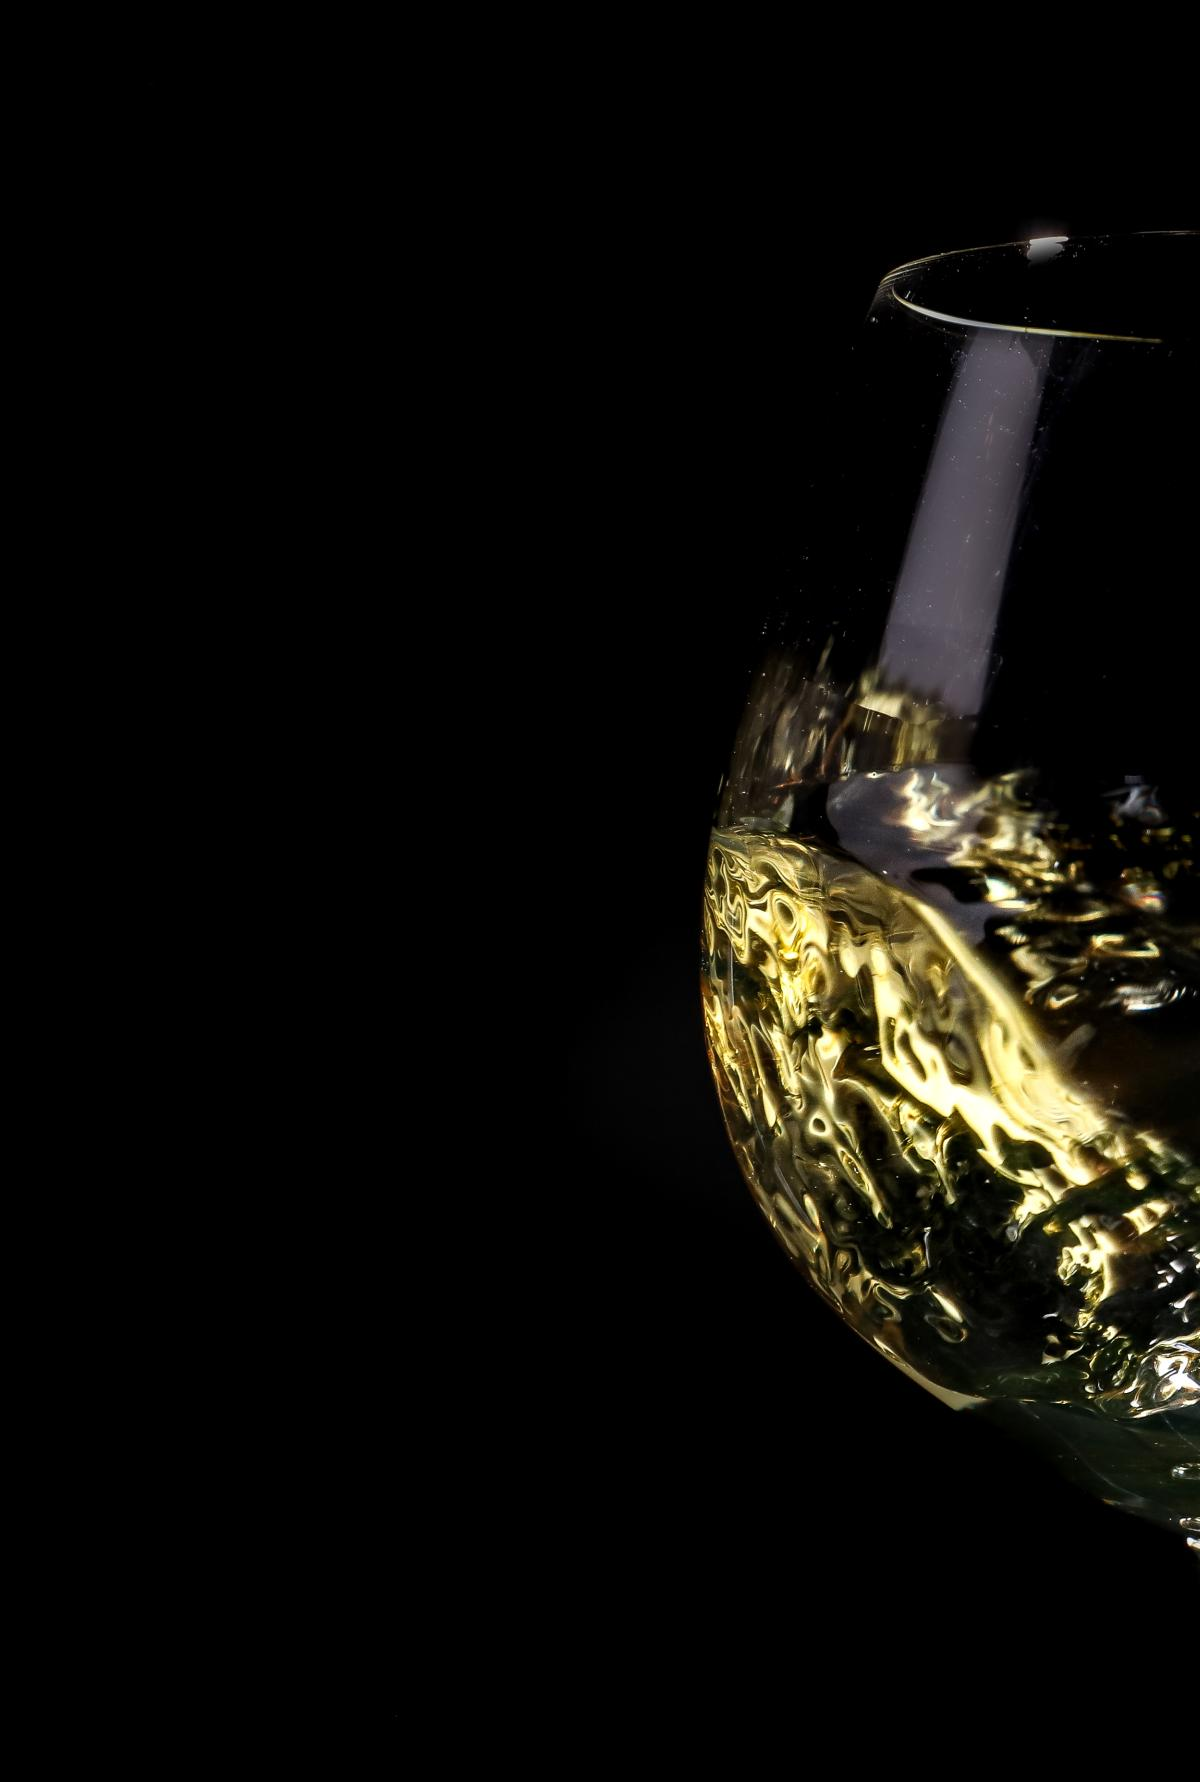 White wine swirling in a glass against a dark background